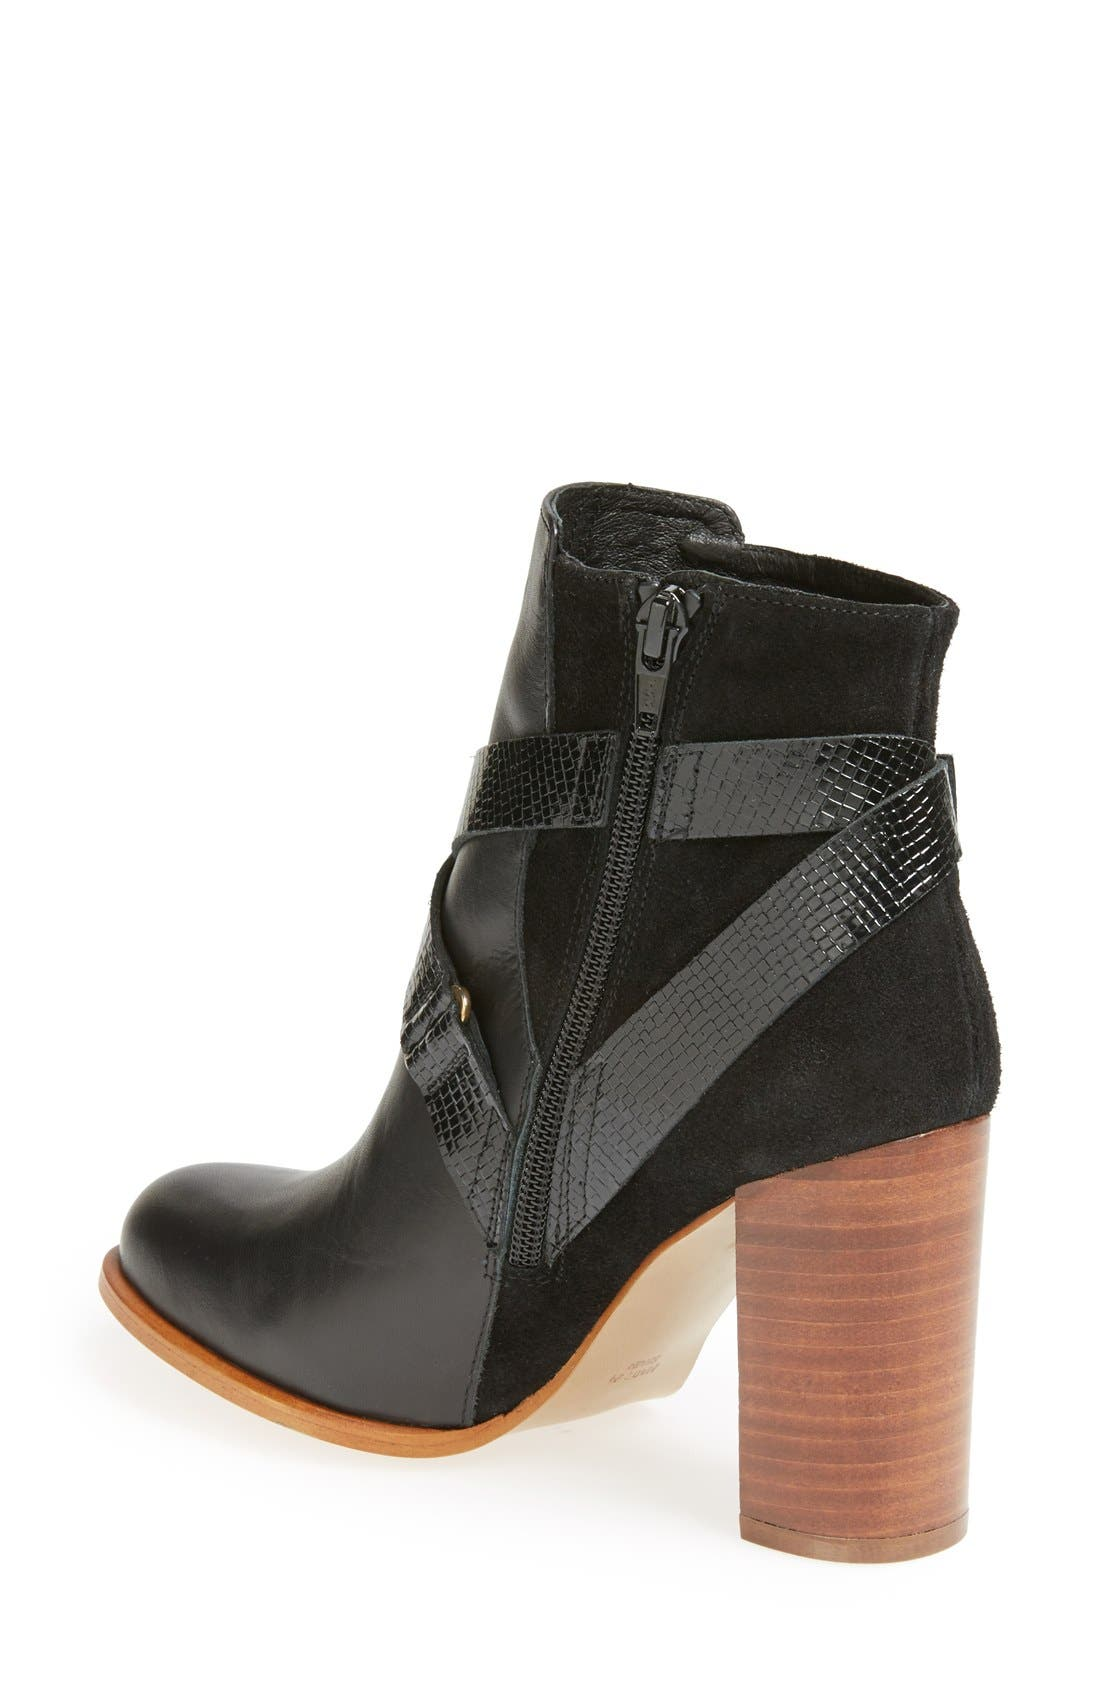 'Aroma' Ankle Boot,                             Alternate thumbnail 2, color,                             001